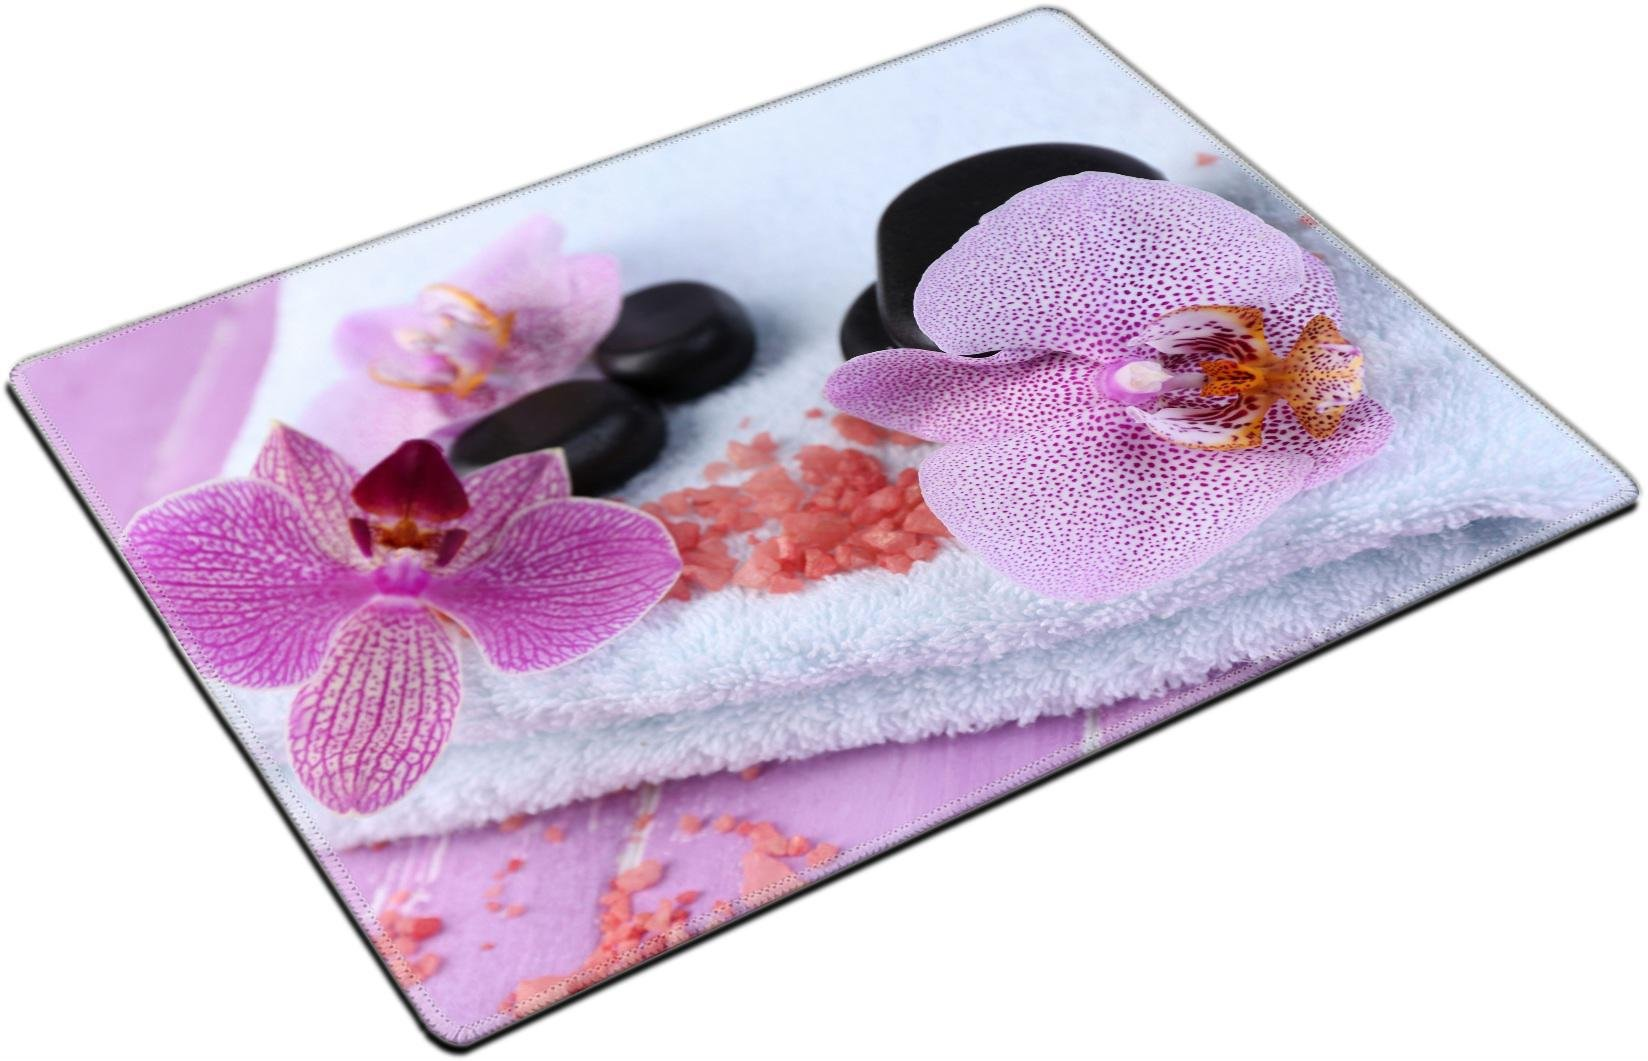 MSD Place Mat Non-Slip Natural Rubber Desk Pads Design: 35235688 Orchid Flowers Spa Stones sea Salt on Towel on Color Wooden Background